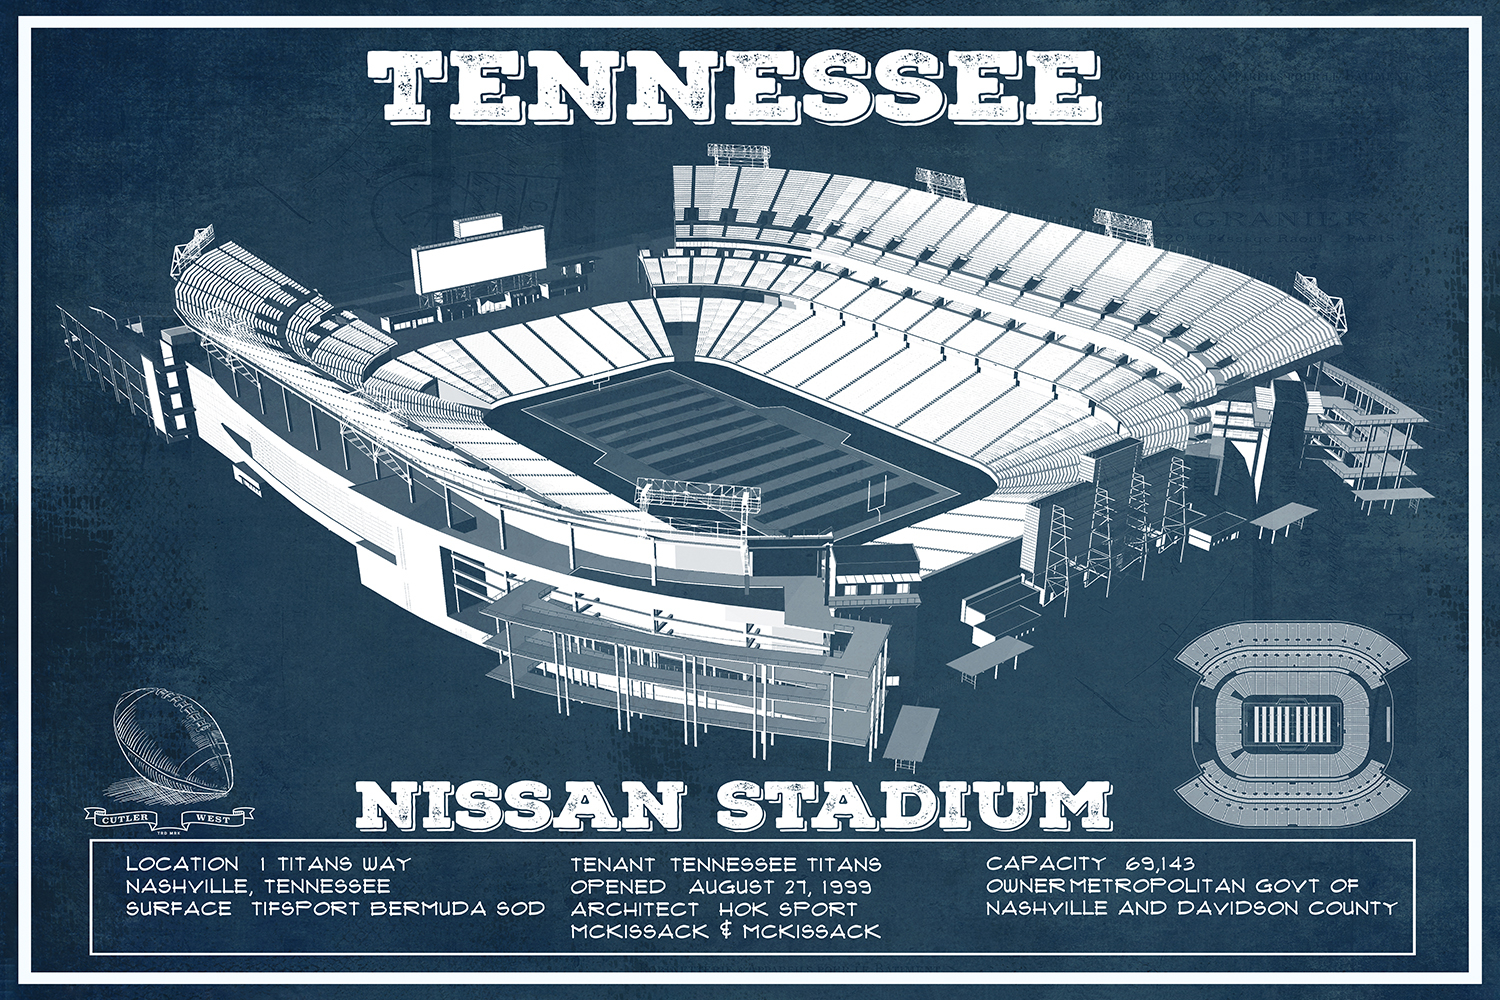 Blueprint of Nissan Stadium in Tennessee with white text and facts listed on the bottom